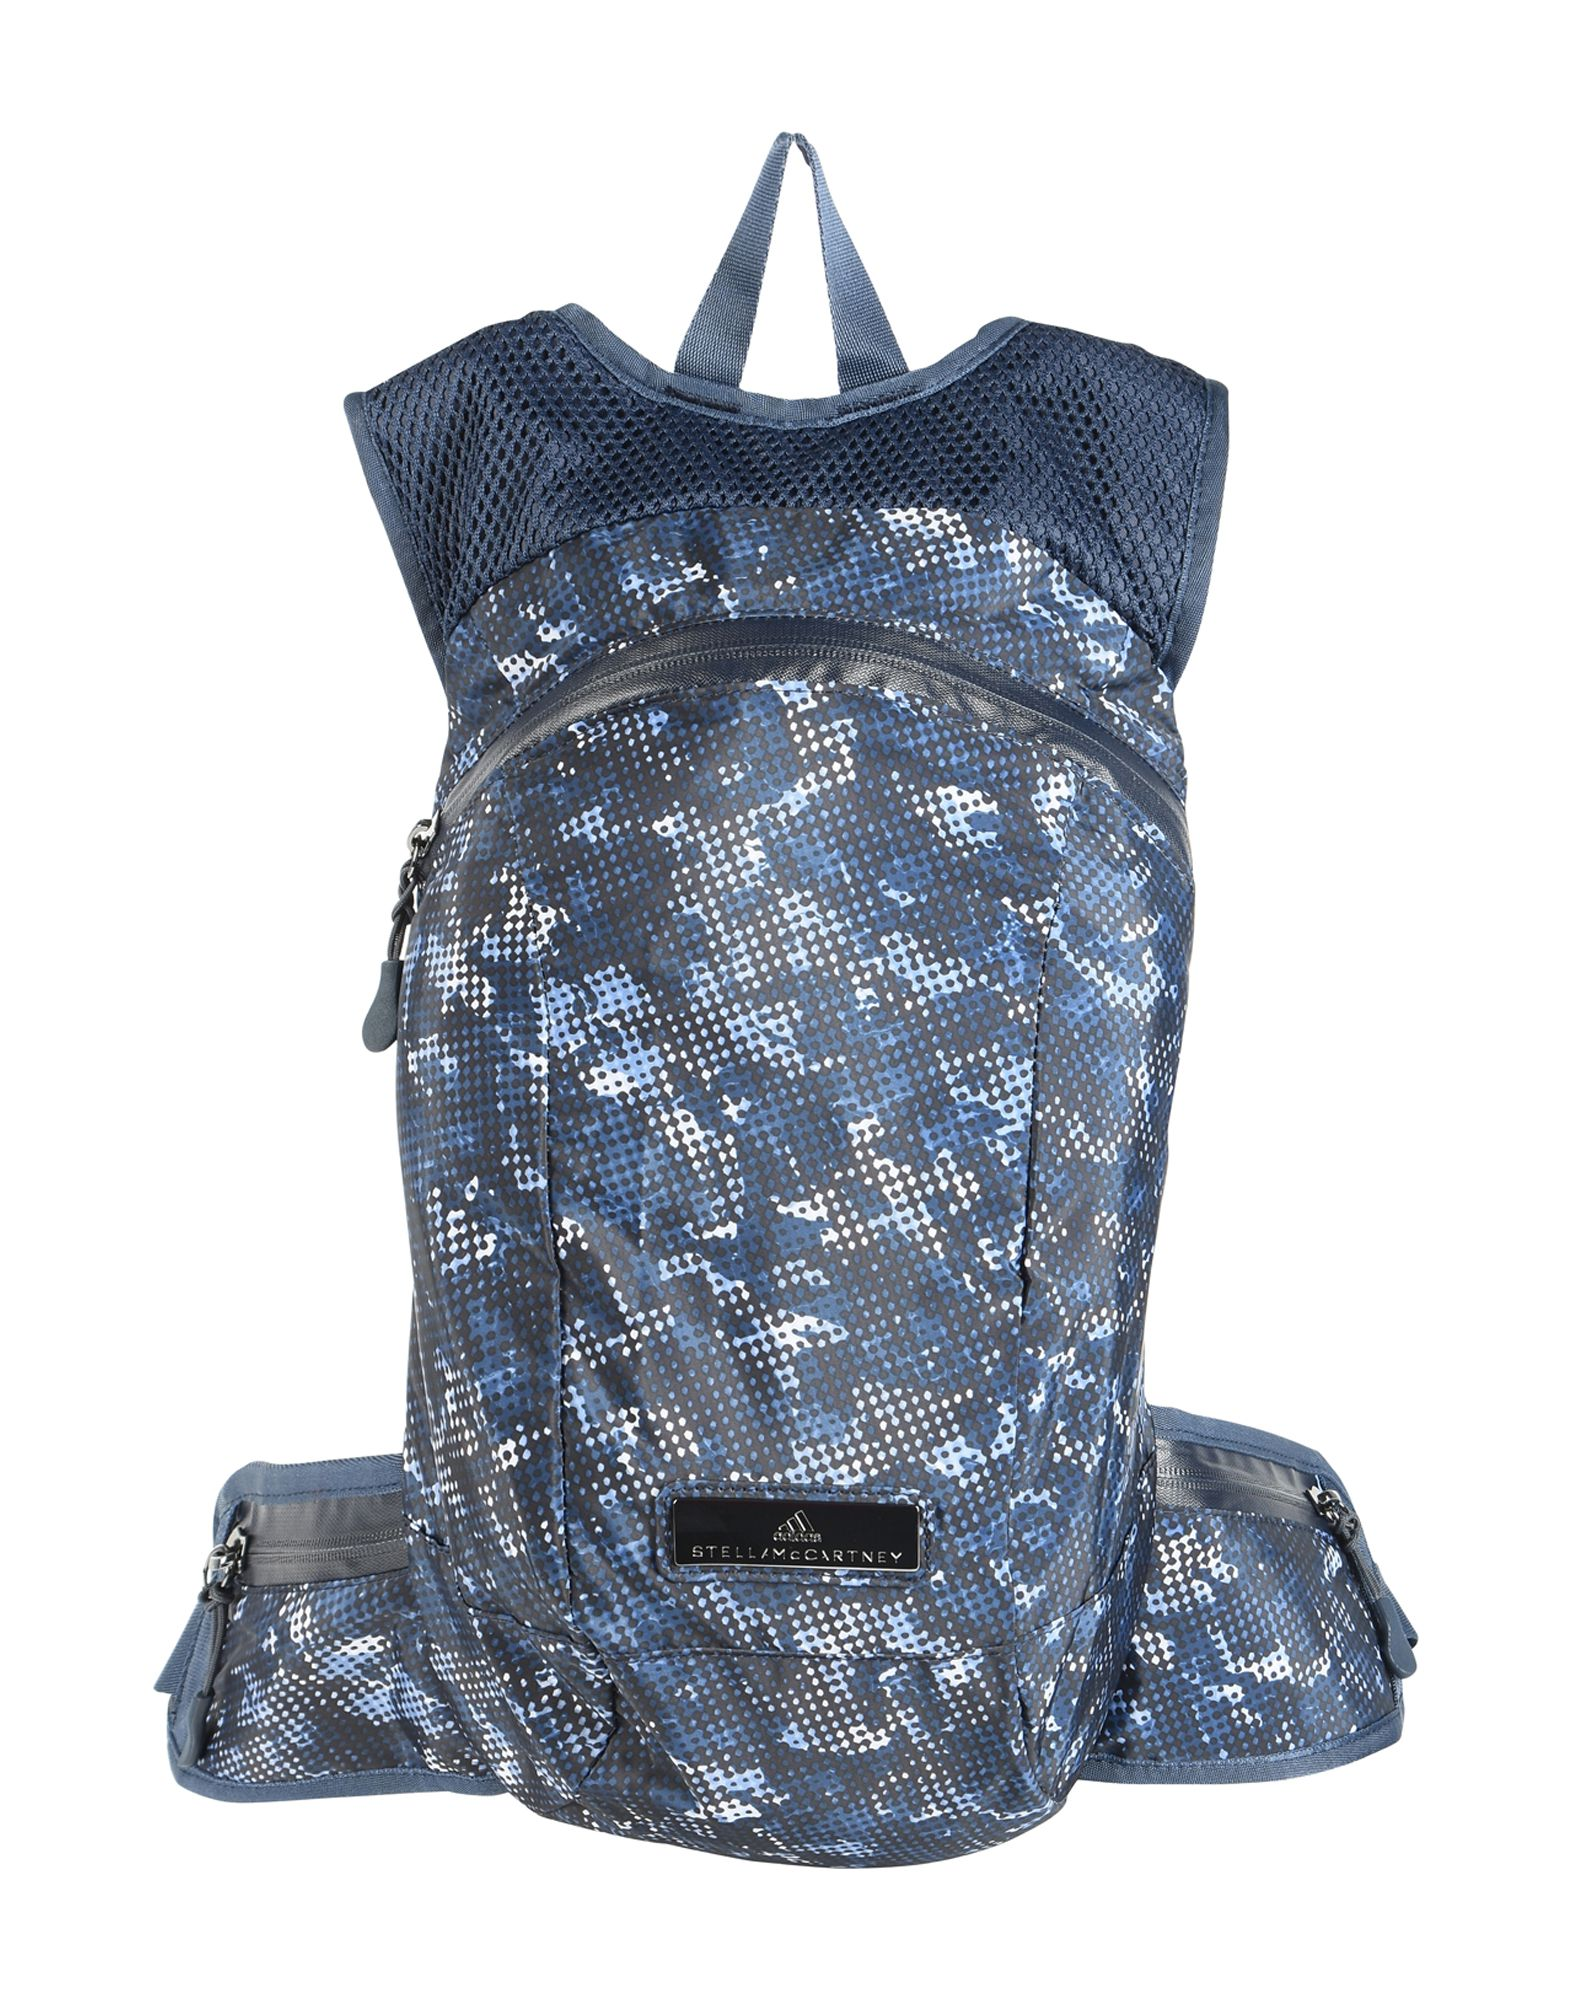 68ebd185e645 ADIDAS by STELLA McCARTNEY. Adizero Running Backpack S. Rucksack   bumbag